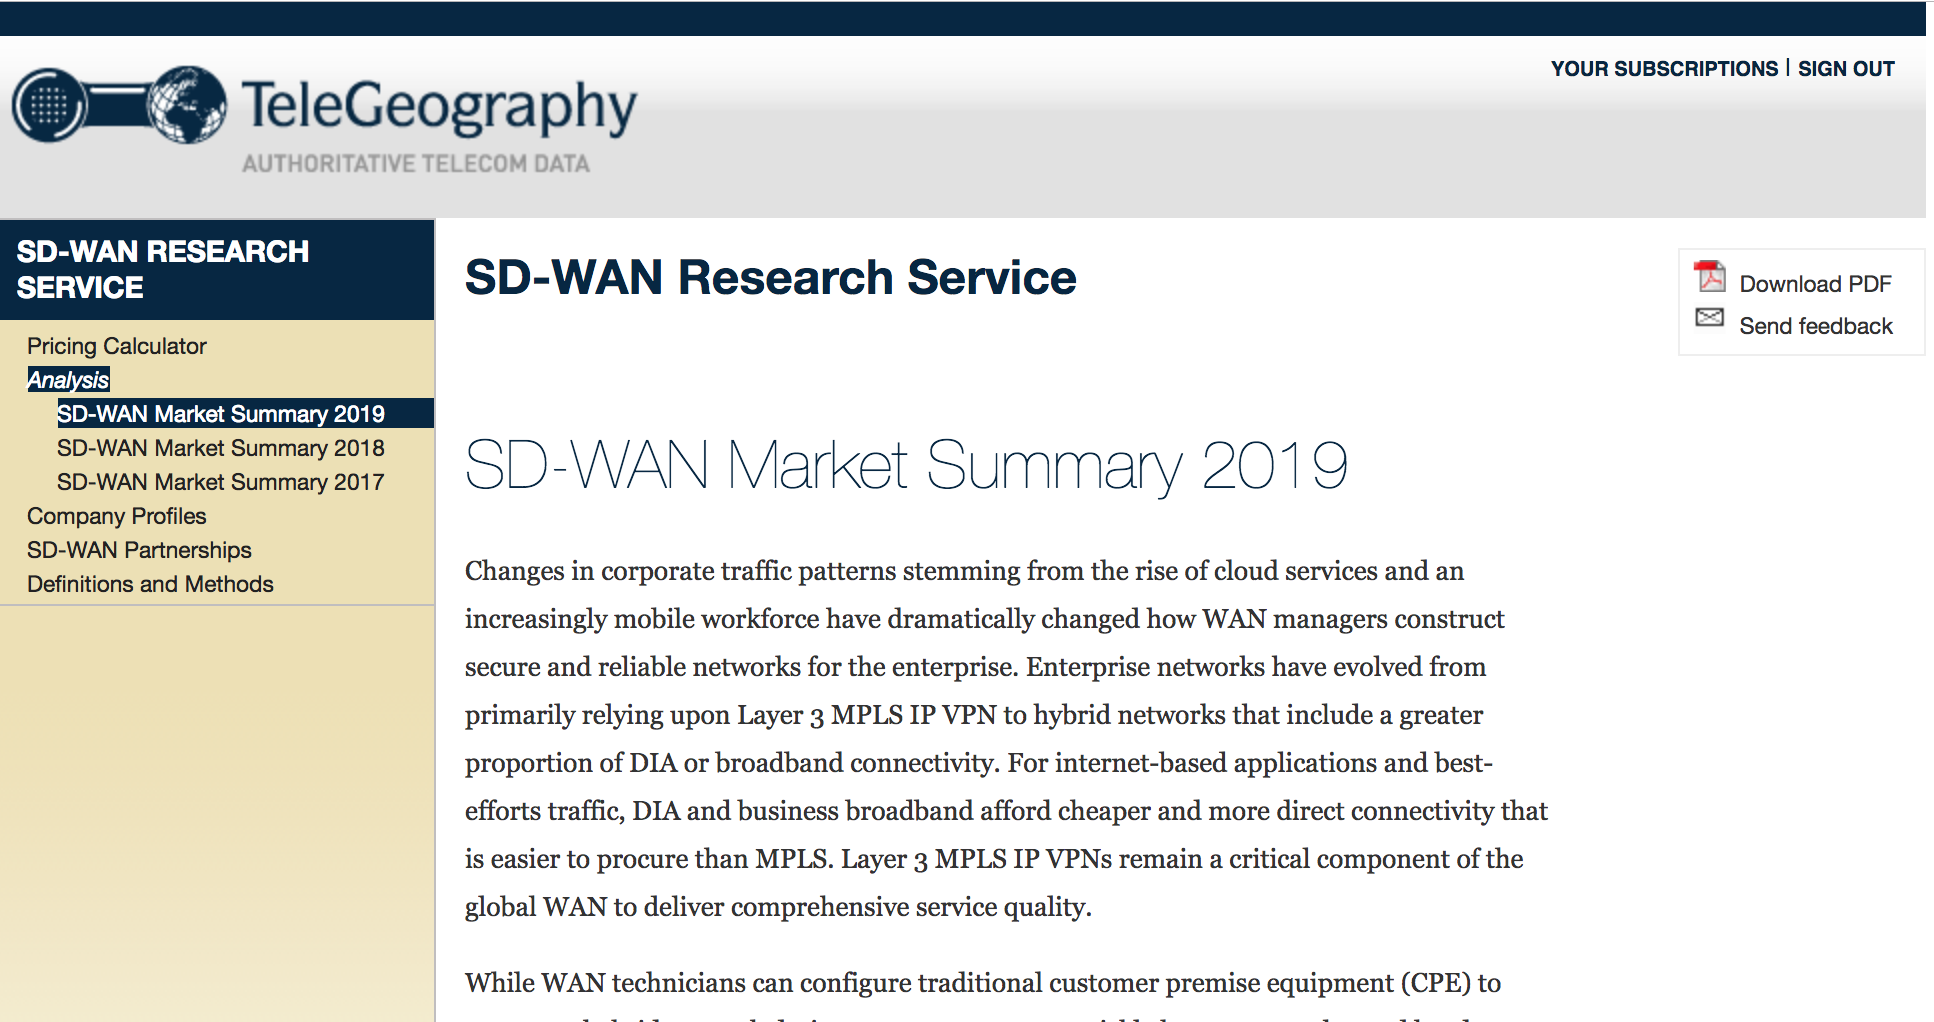 SDWAN Research Service 2019